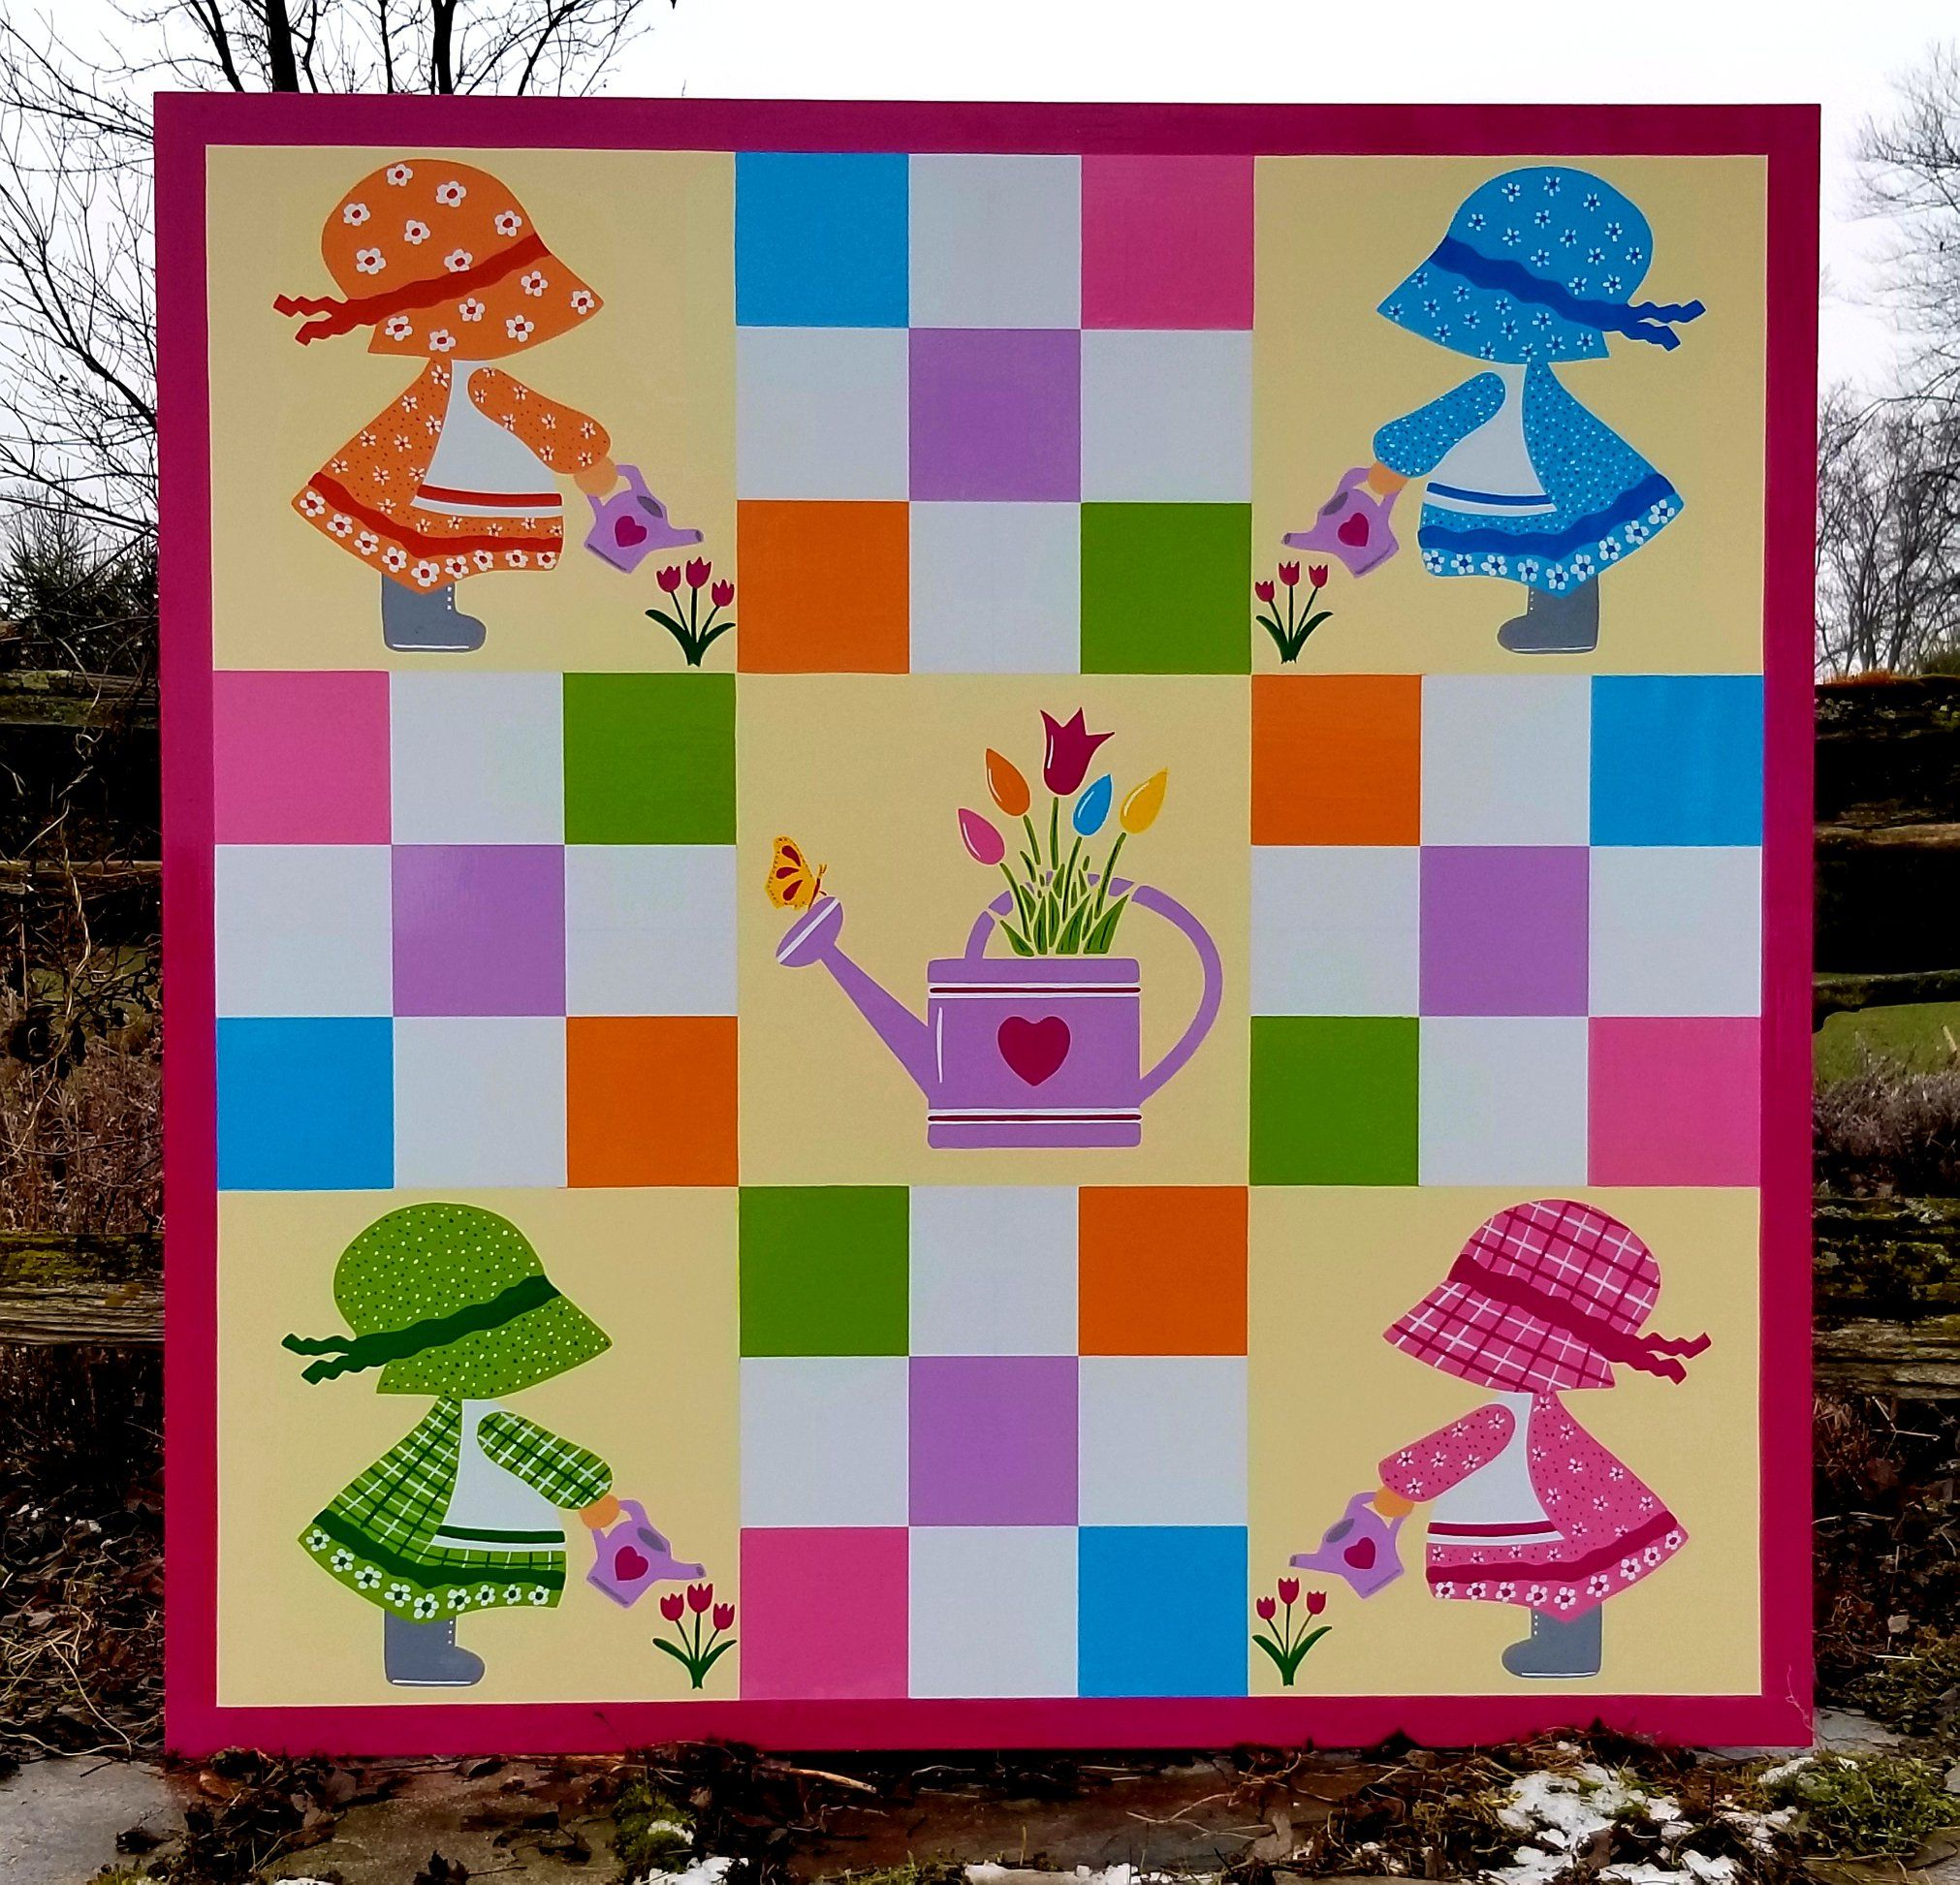 Pin by Angel Beard on Barn Quilts II in 2020 Barn quilts